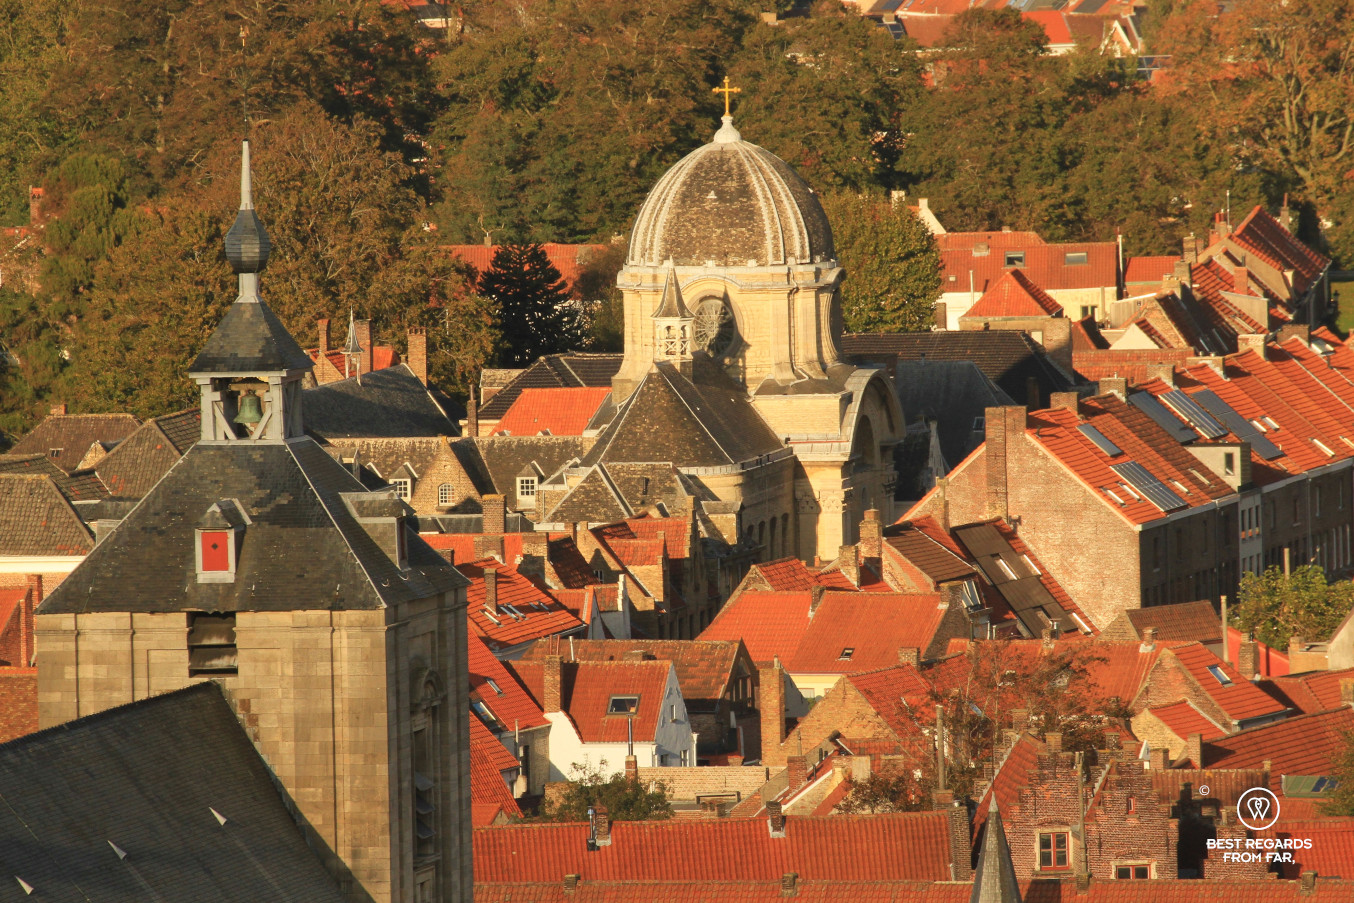 View on the English convent and its dome from the belfry, Bruges, Belgium